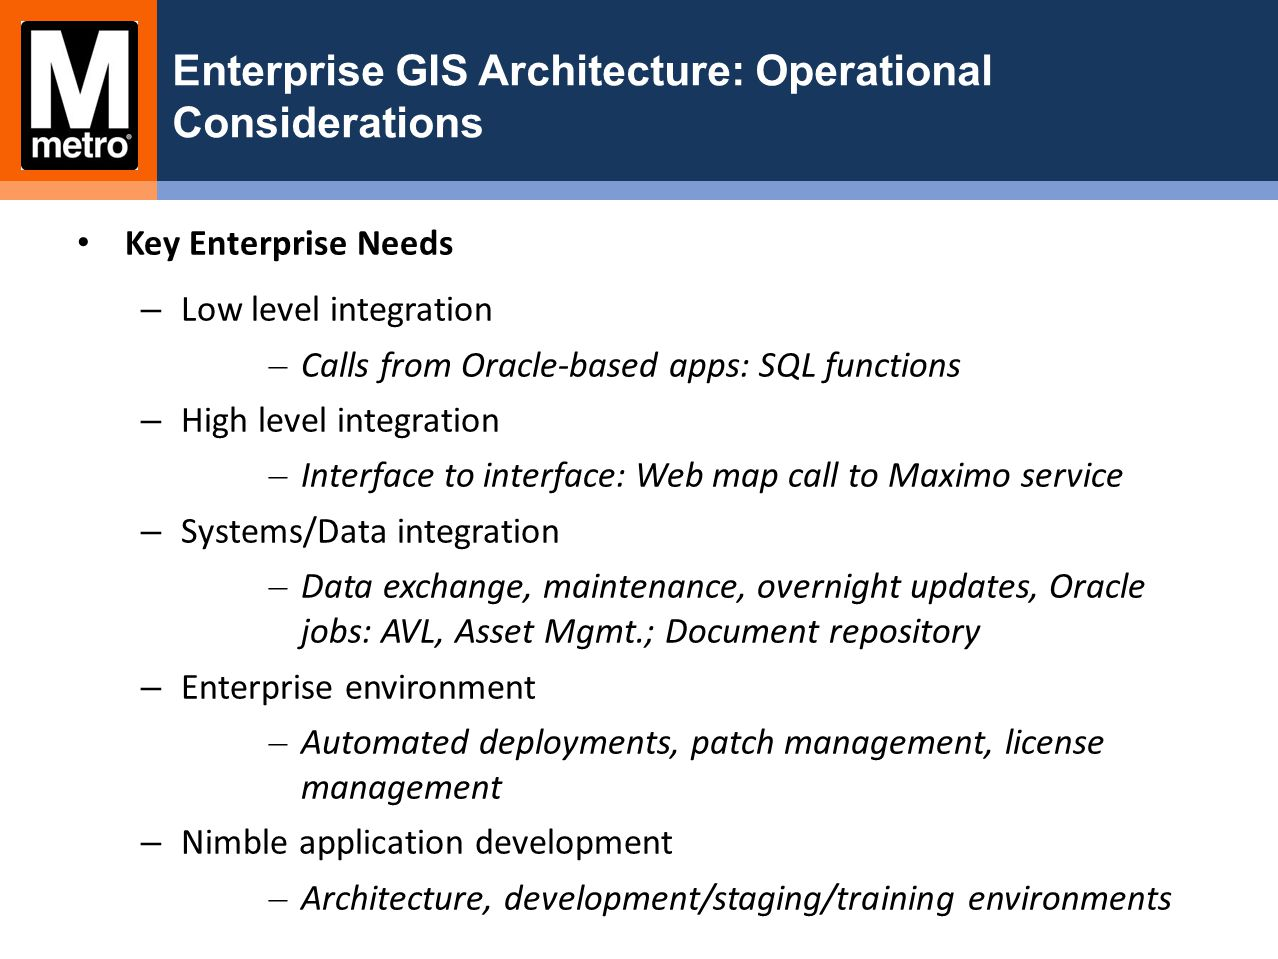 Enterprise GIS Architecture: Operational Considerations Key Enterprise Needs – Low level integration – Calls from Oracle-based apps: SQL functions – H